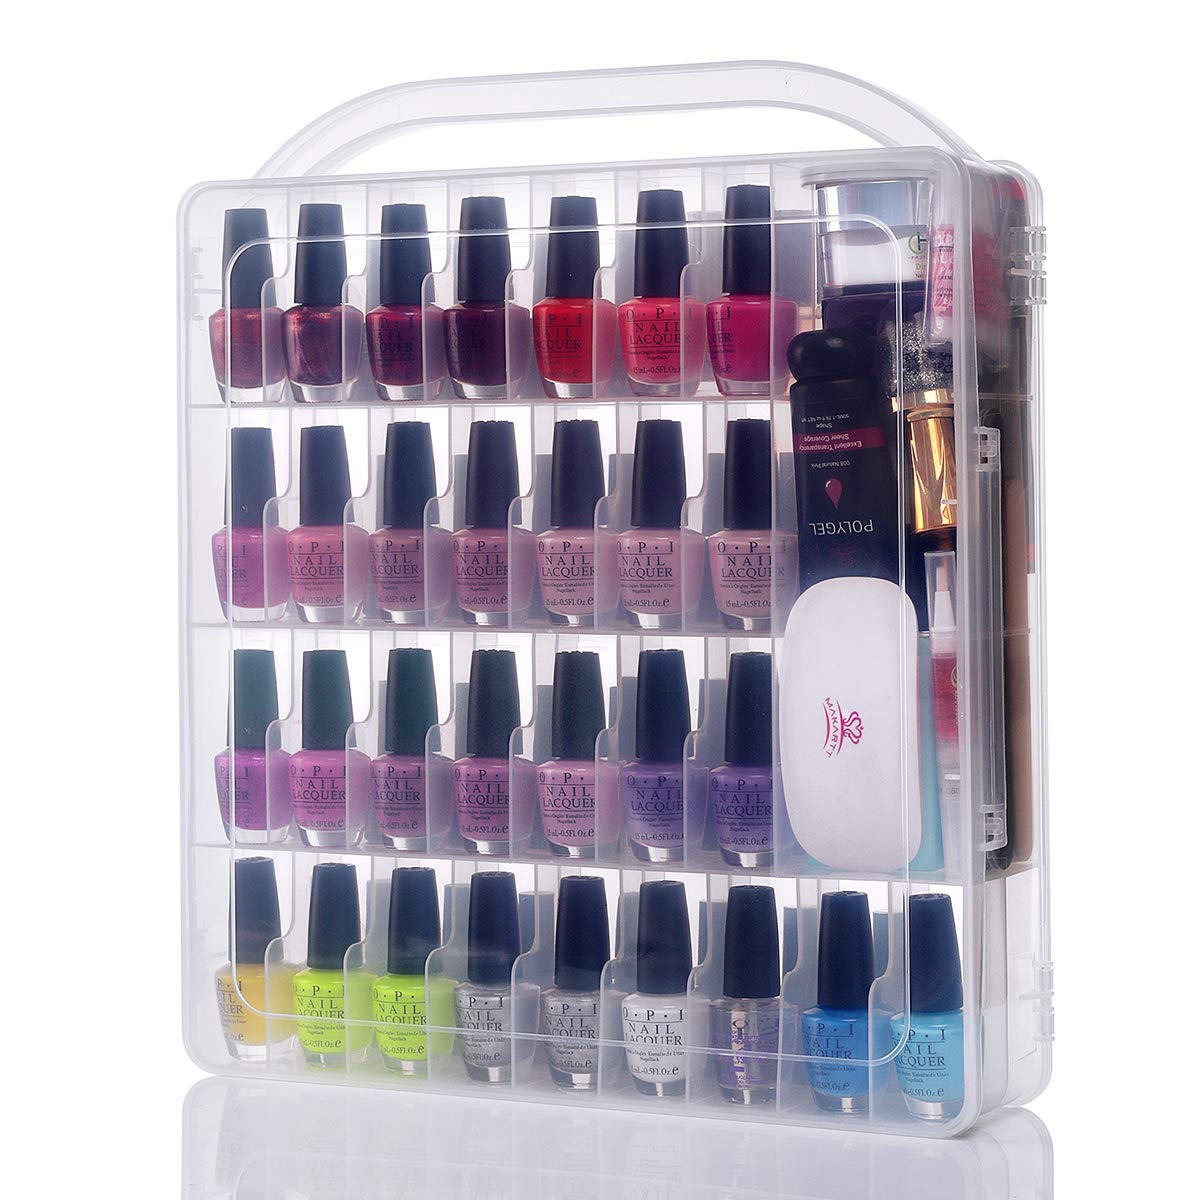 Makartt Large Nail Polish Organizer Storage Holder Case - Stores 60 Bottleswith Large Compartment for Tools N-03